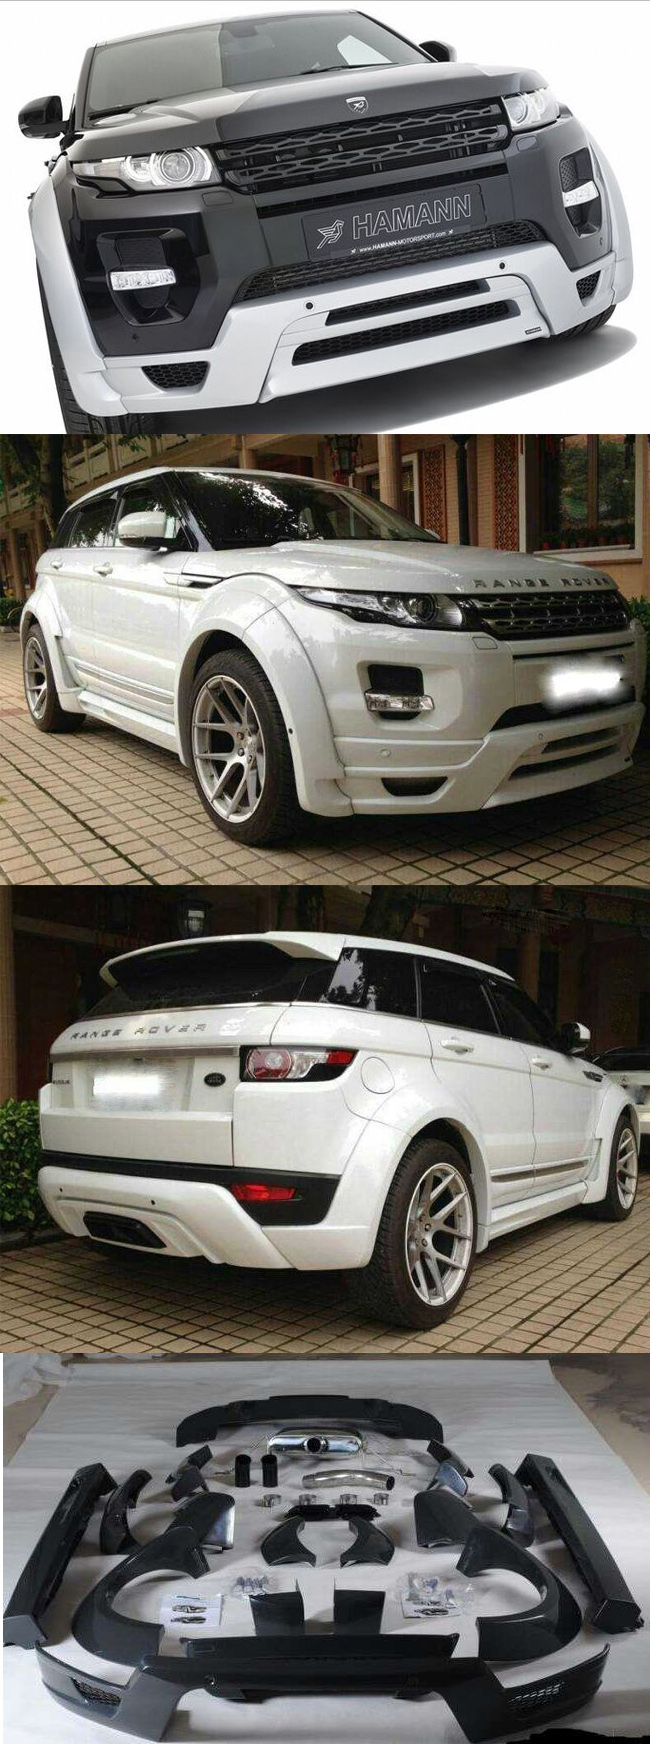 body lip range rover evoque m u hamann range rover evoque. Black Bedroom Furniture Sets. Home Design Ideas